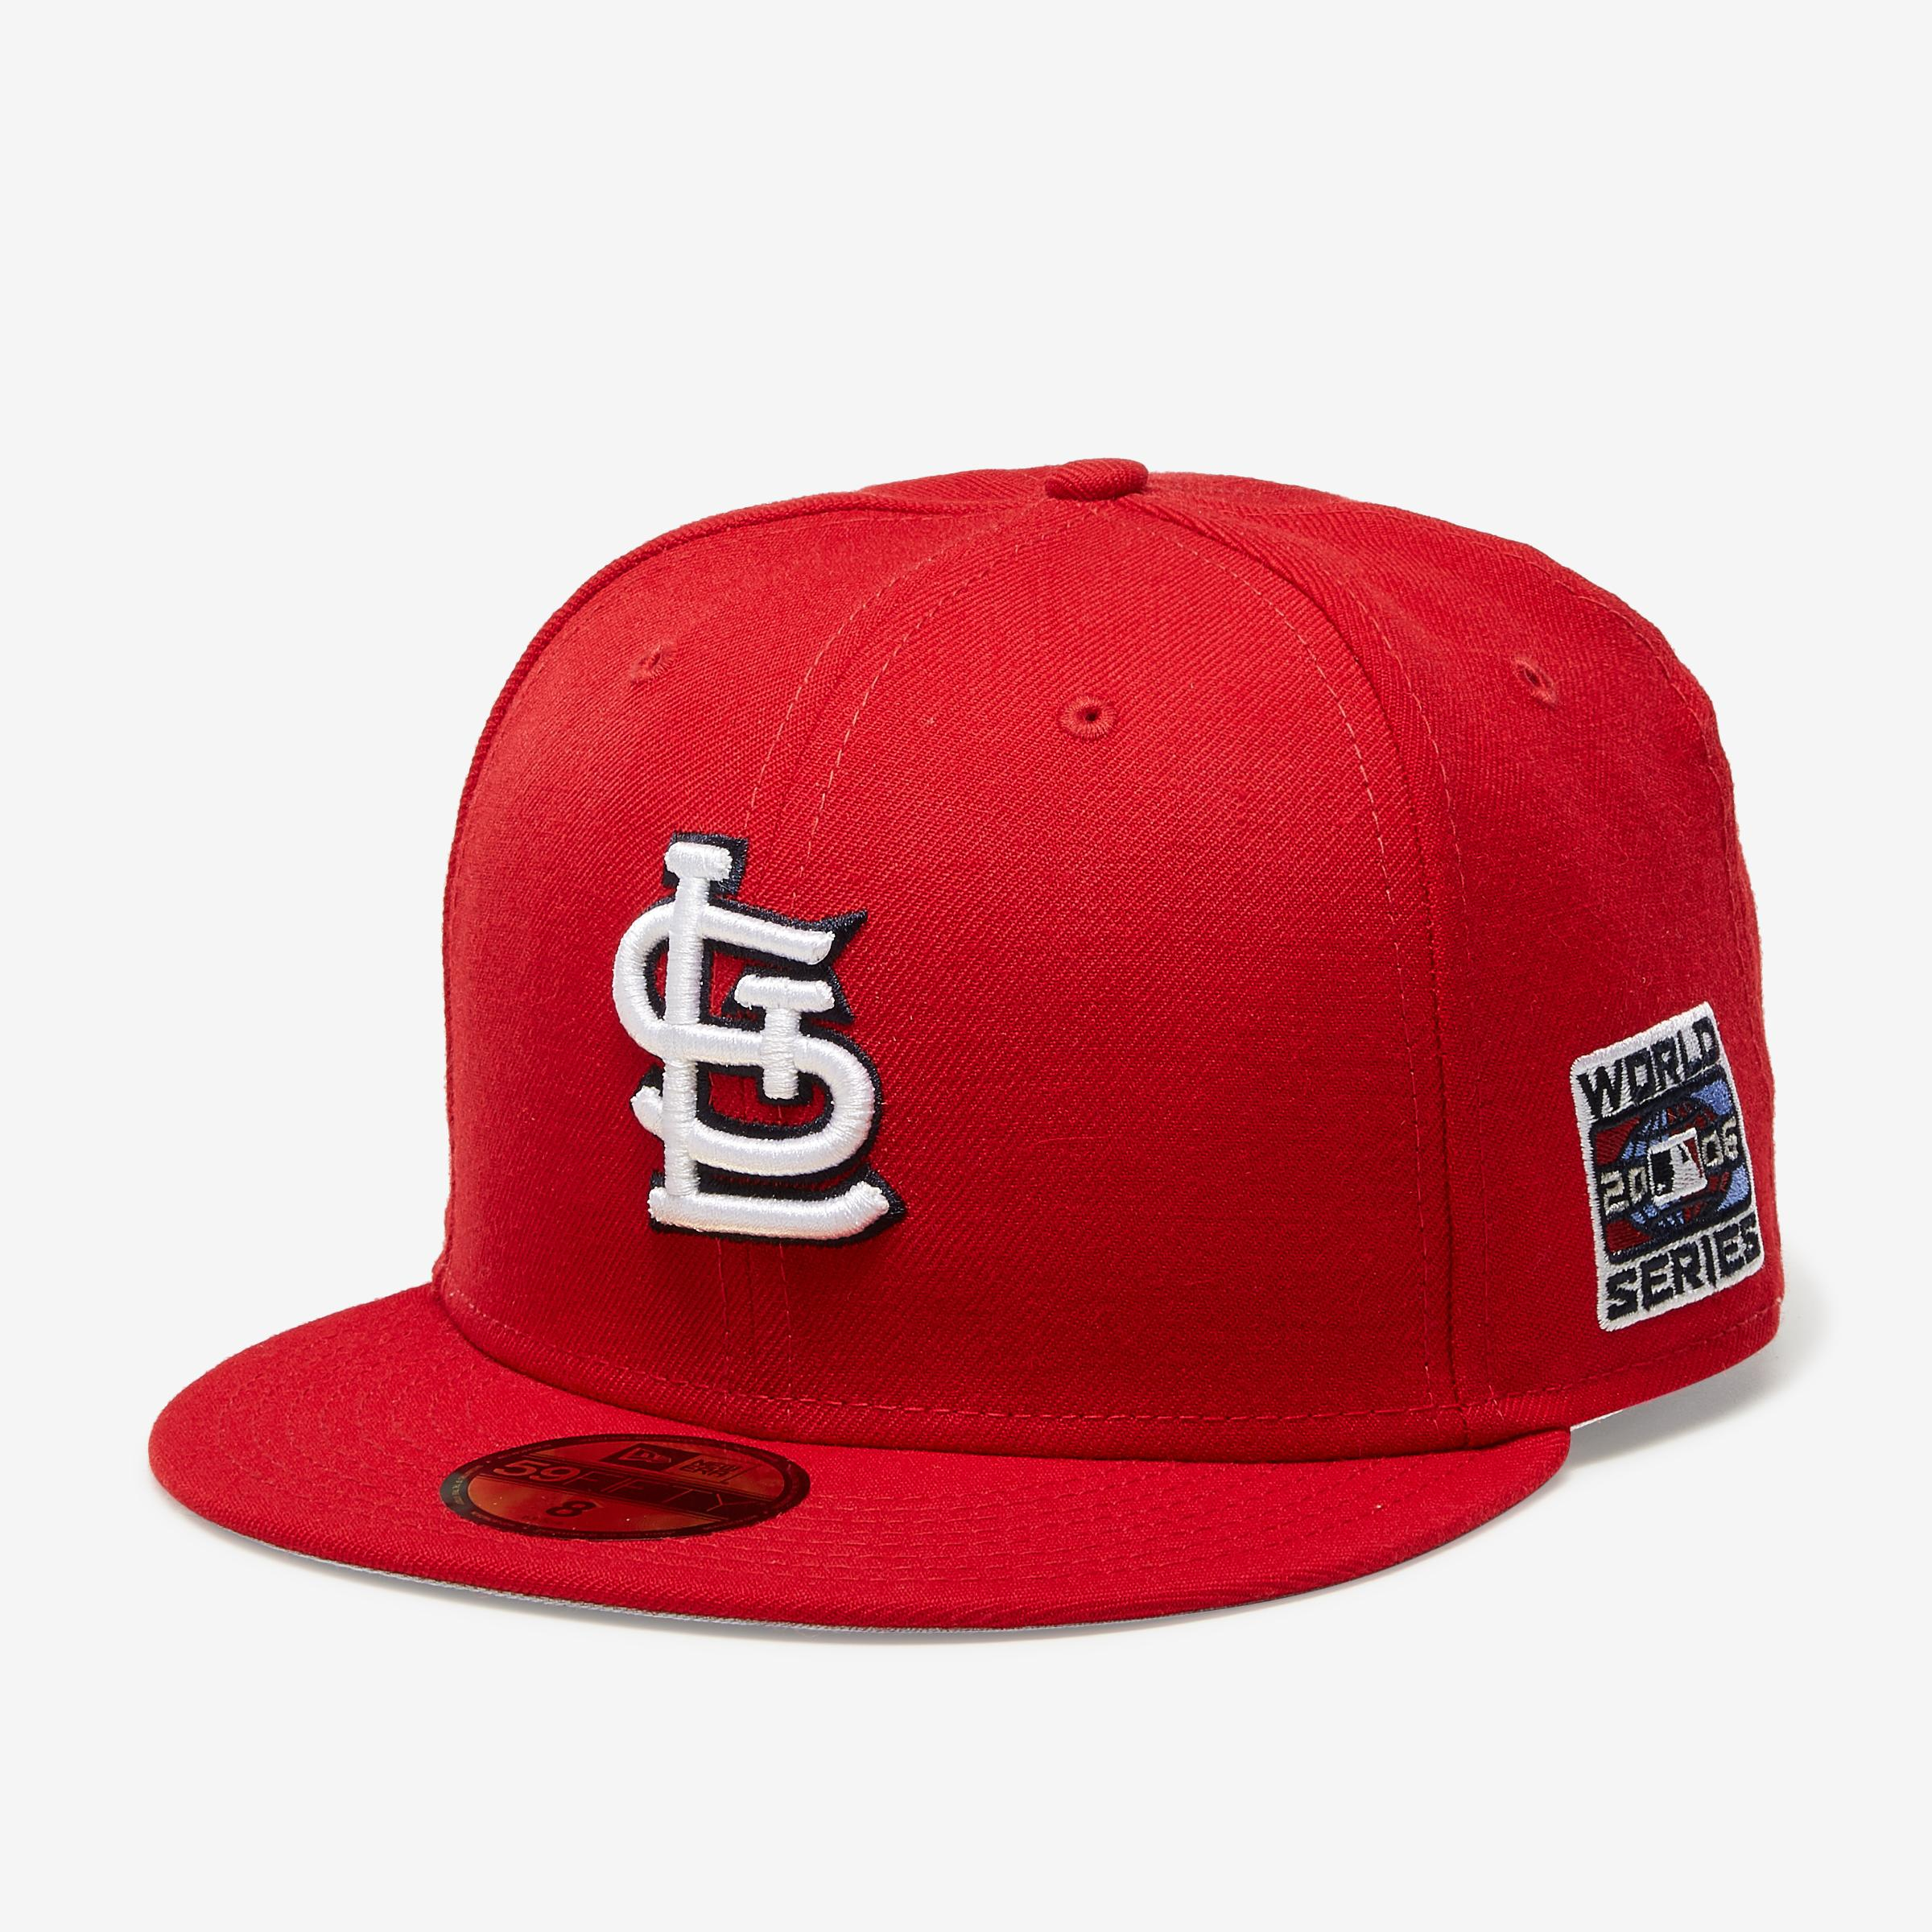 Cardinals 59fifty Fitted